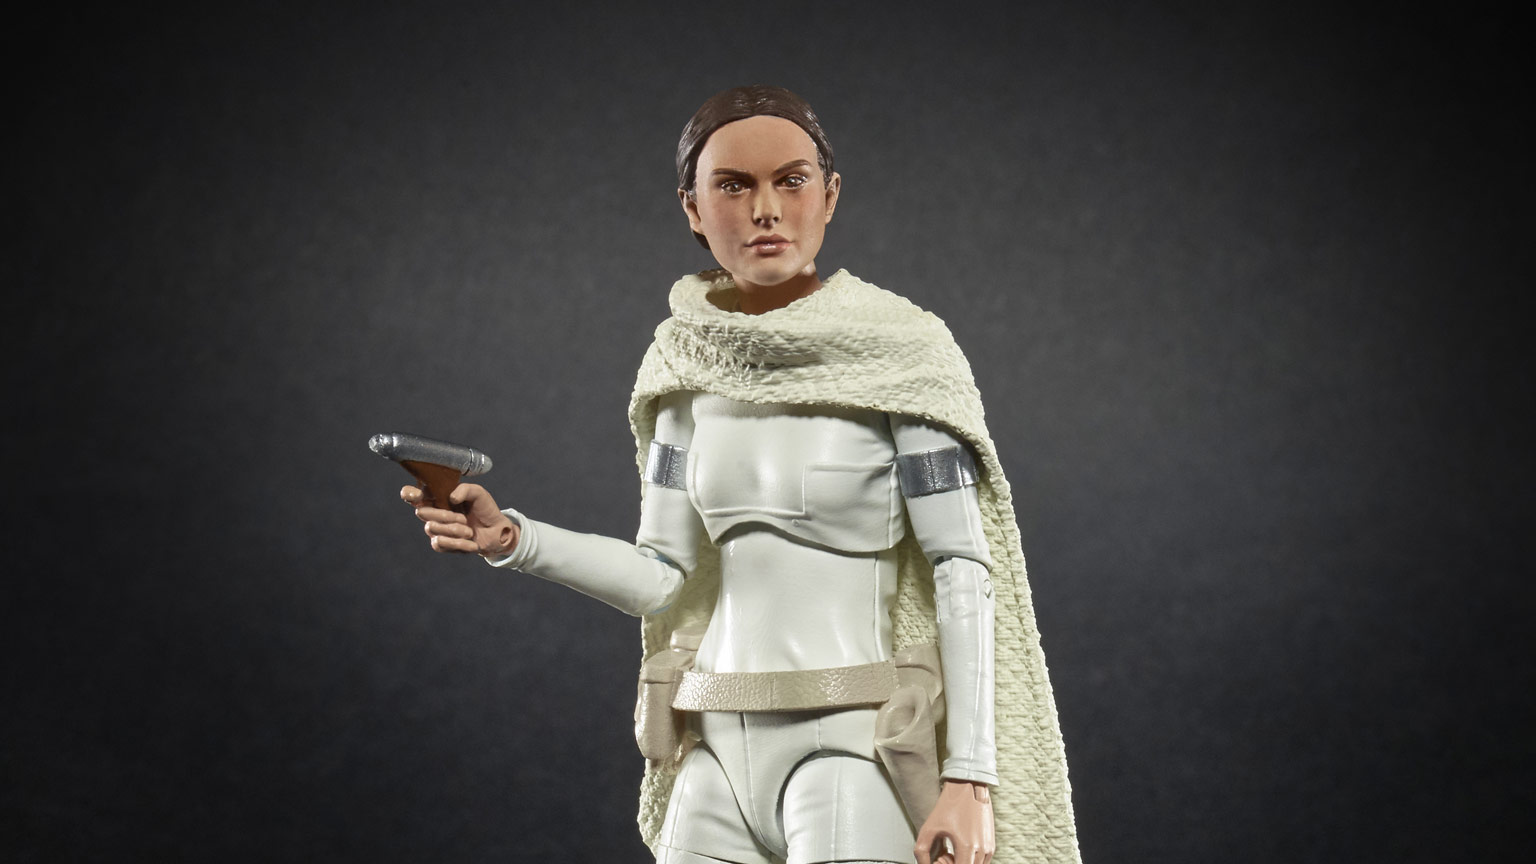 Images of padme from star wars